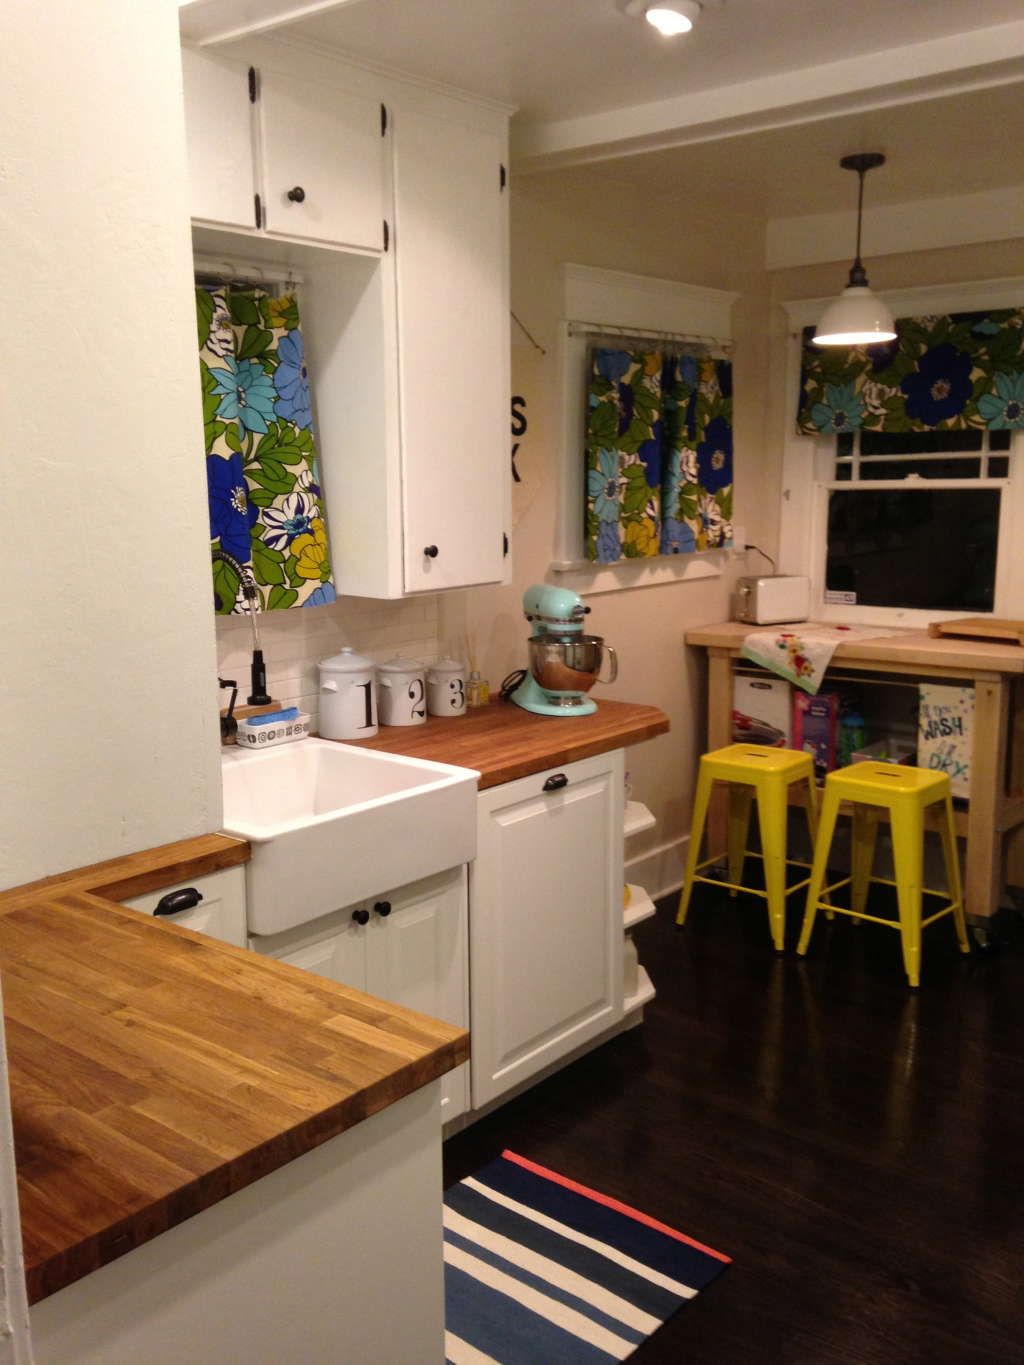 Cool Calm And Functional Kitchen: Elizabeth's Stylish, Functional Kitchen